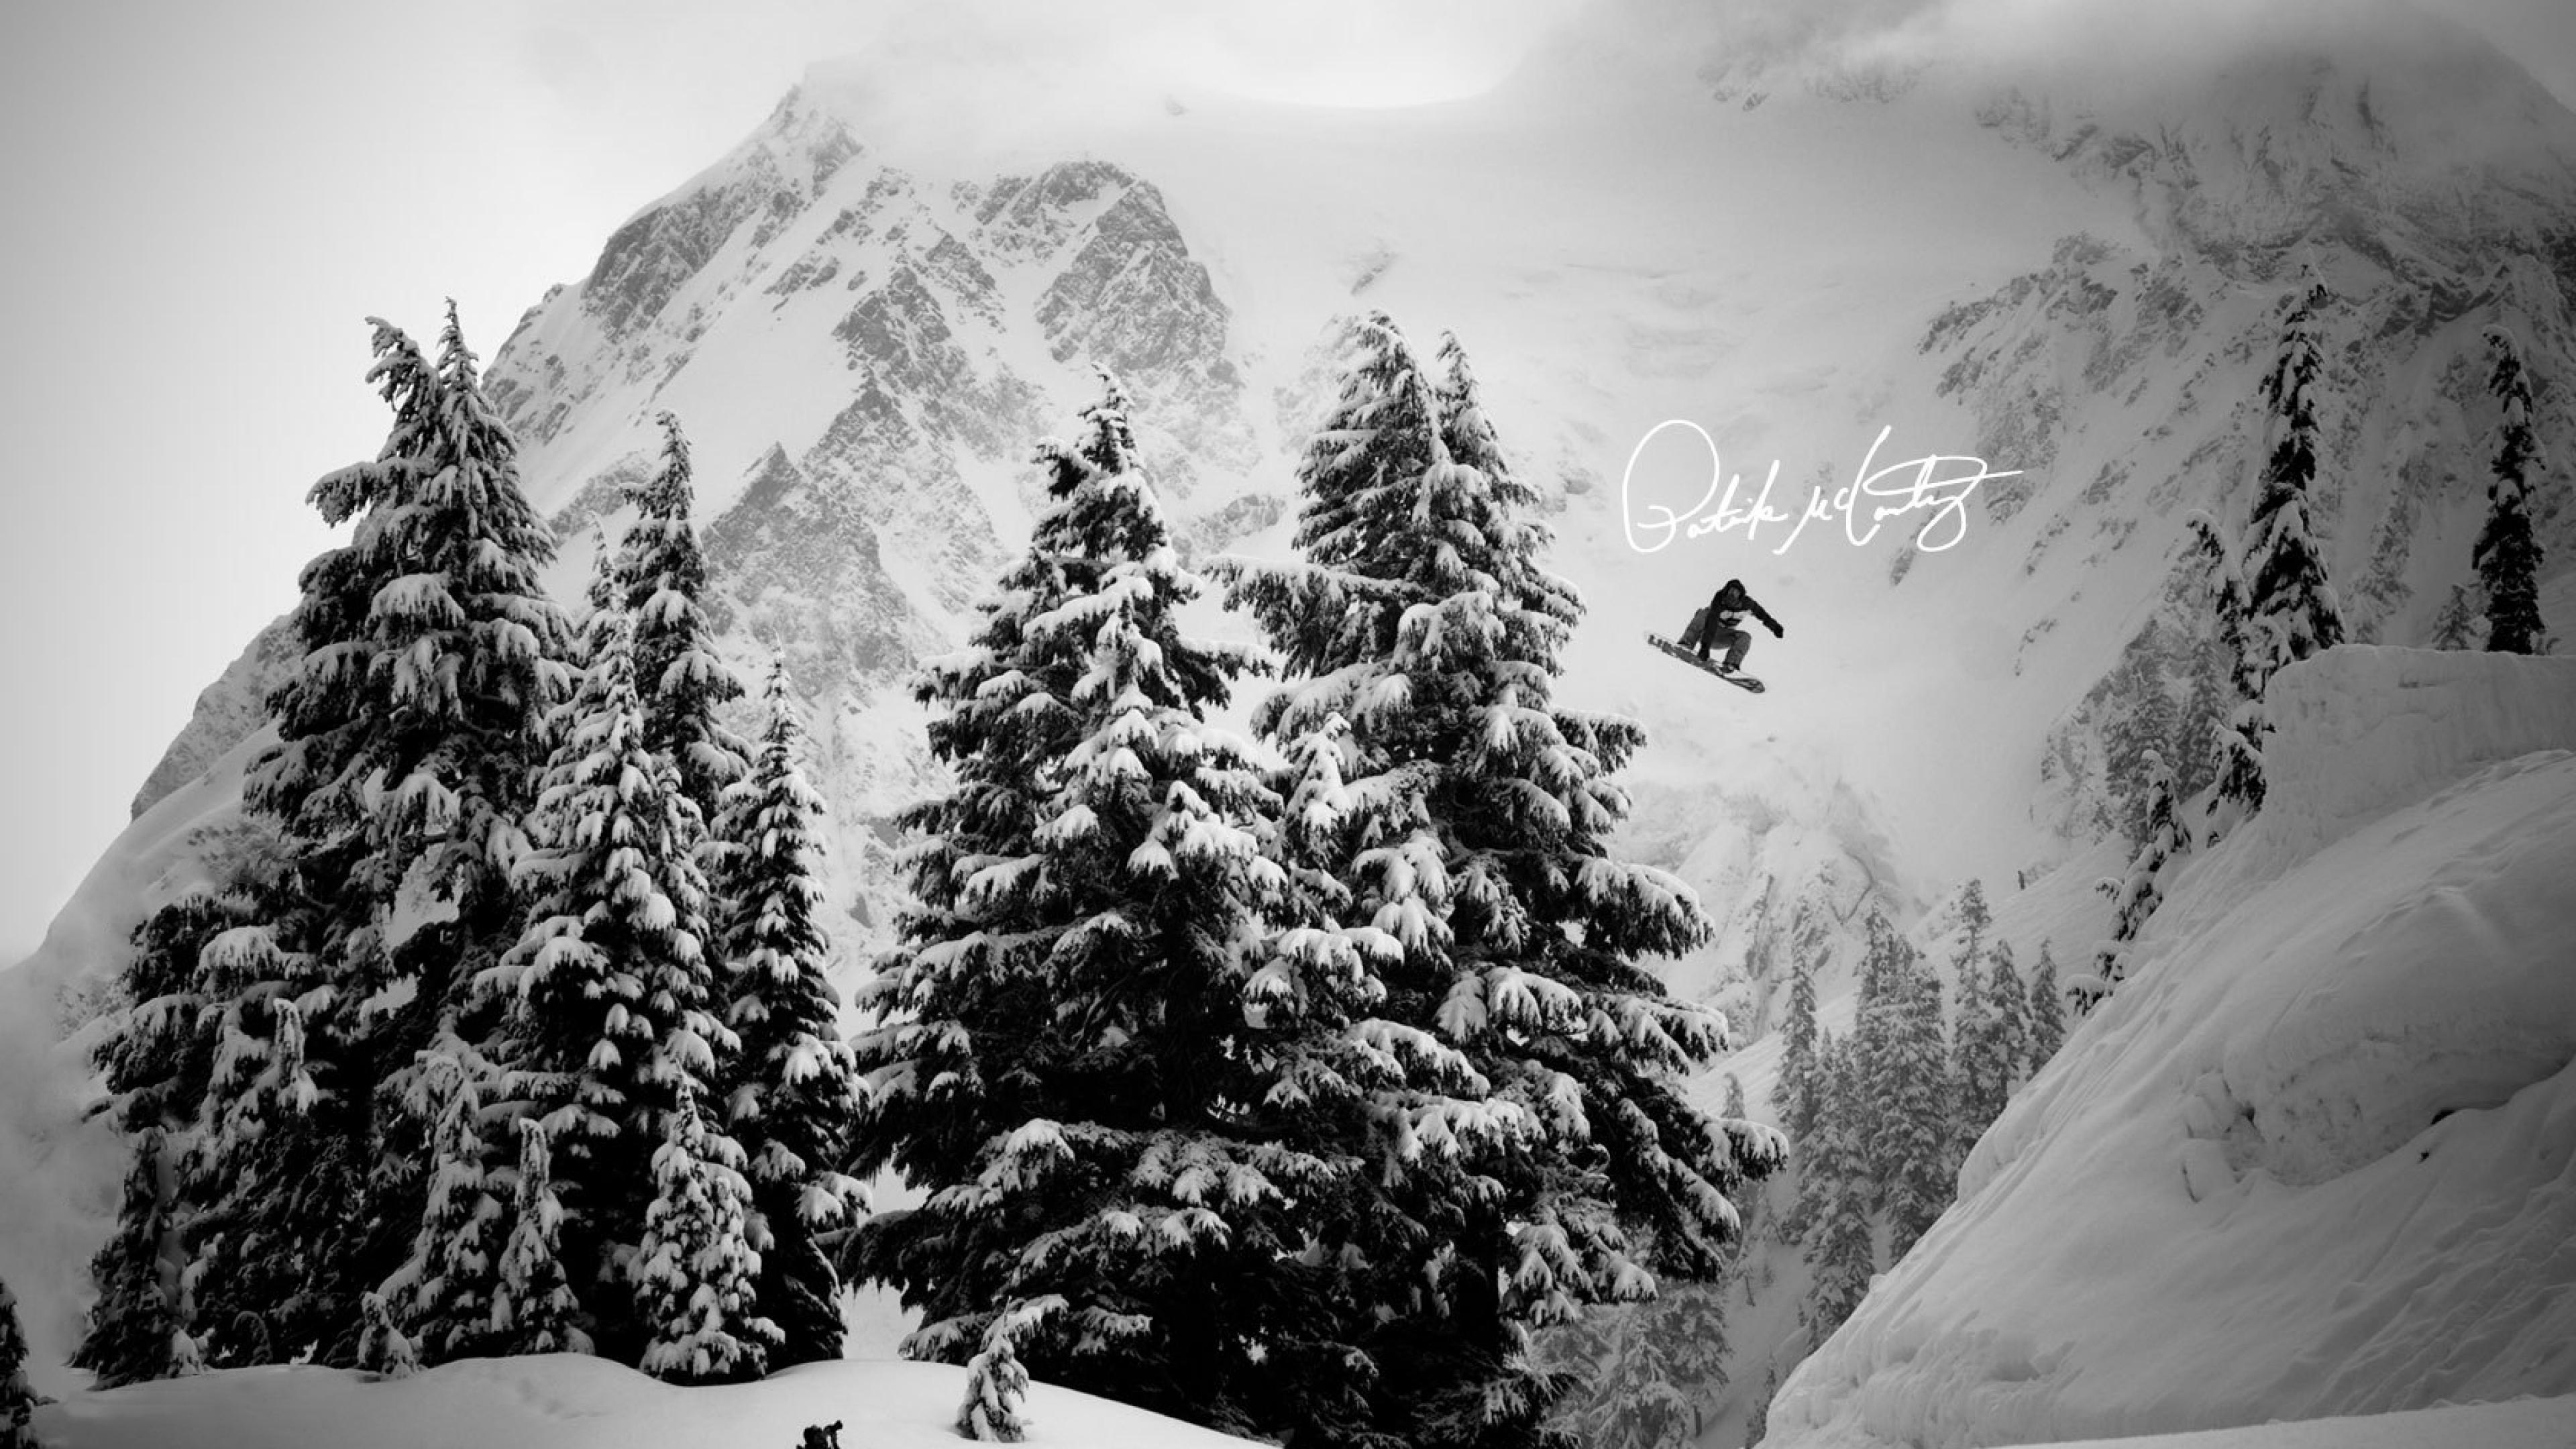 Download Snowboarding Wallpapers 3840x2160